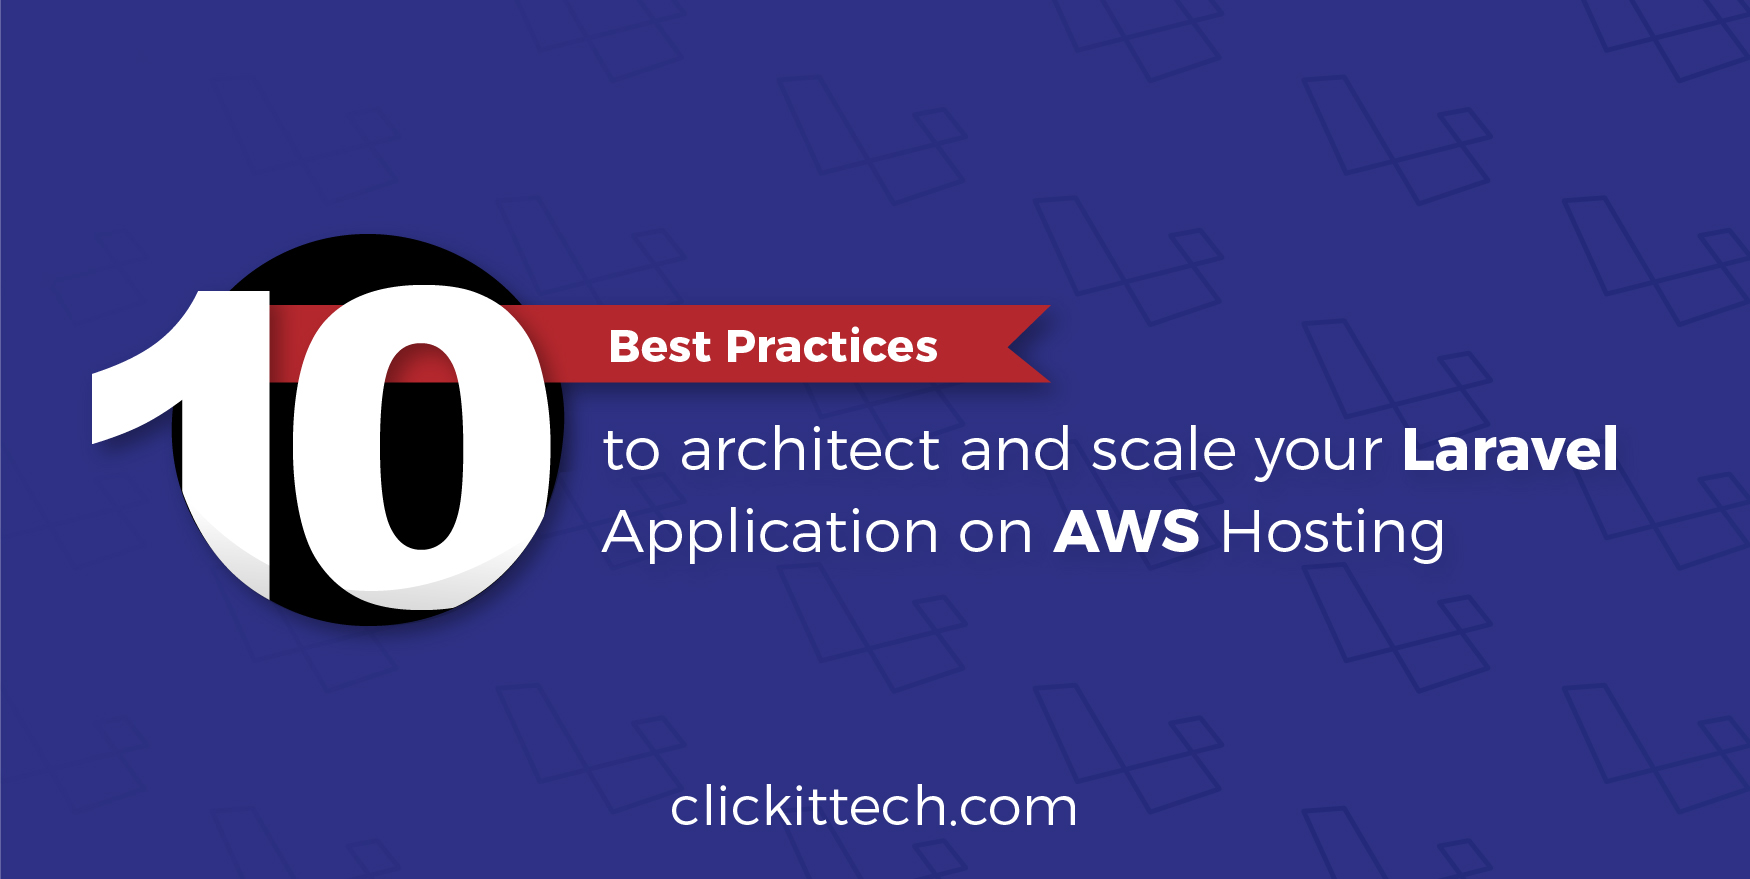 10 Best Practices to architect and scale your Laravel Application on